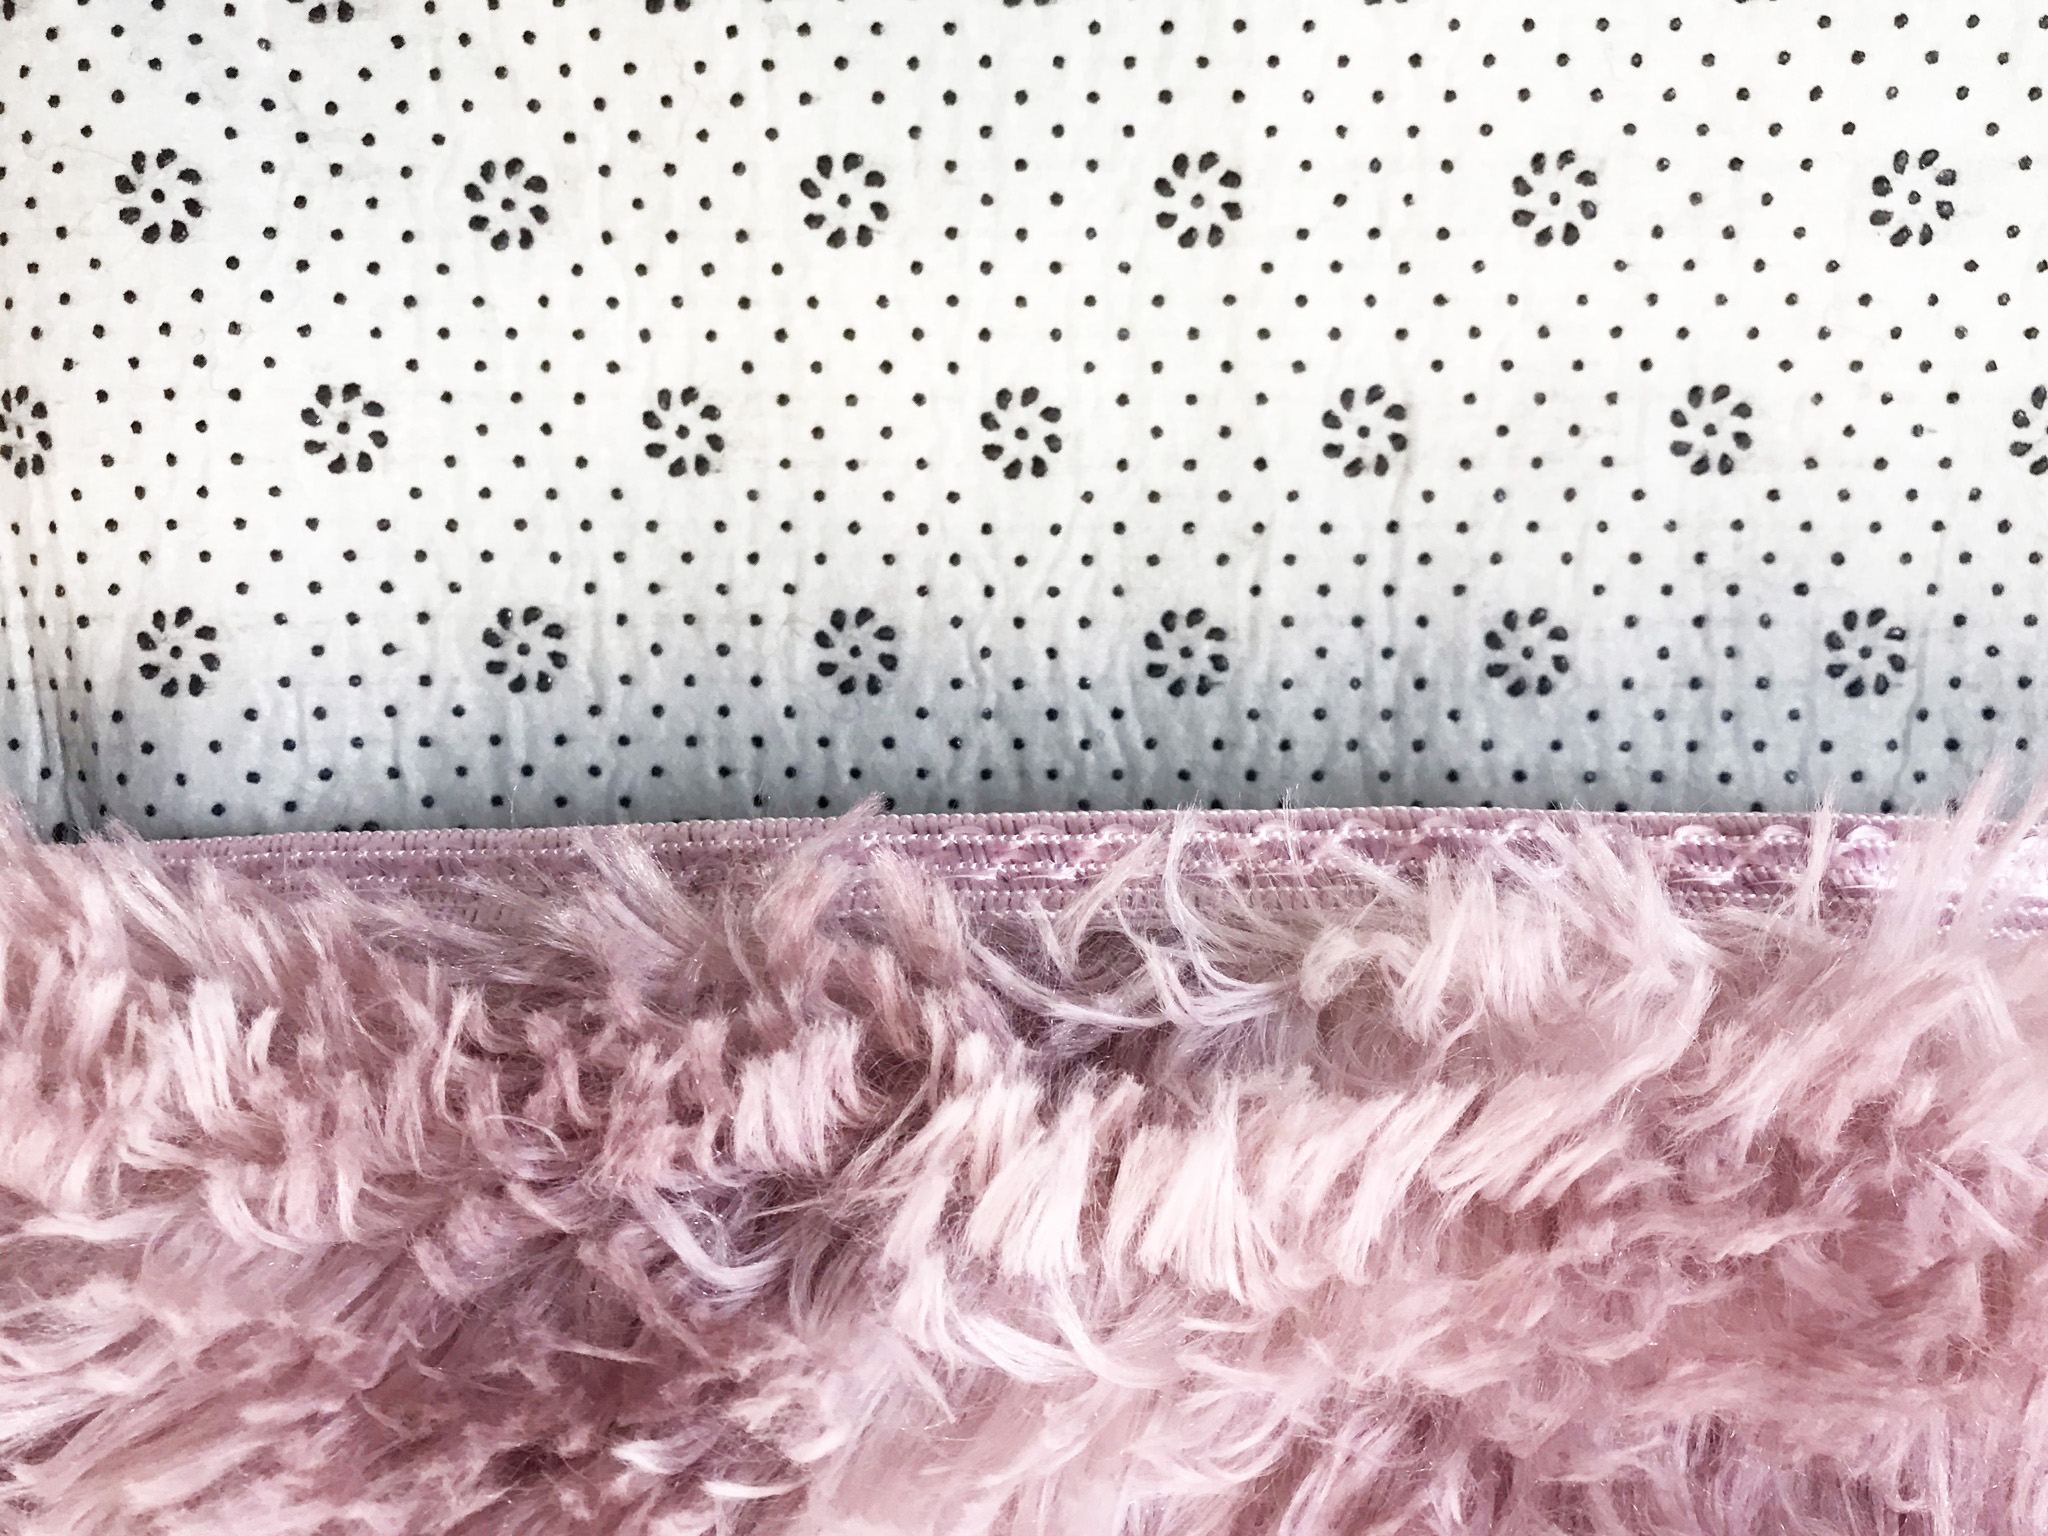 kaliga bazaar rug for bedroom ultra soft fluffy carpets for kids nursery teens room girls boys thick accent rugs 4 ft x 6 ft pink